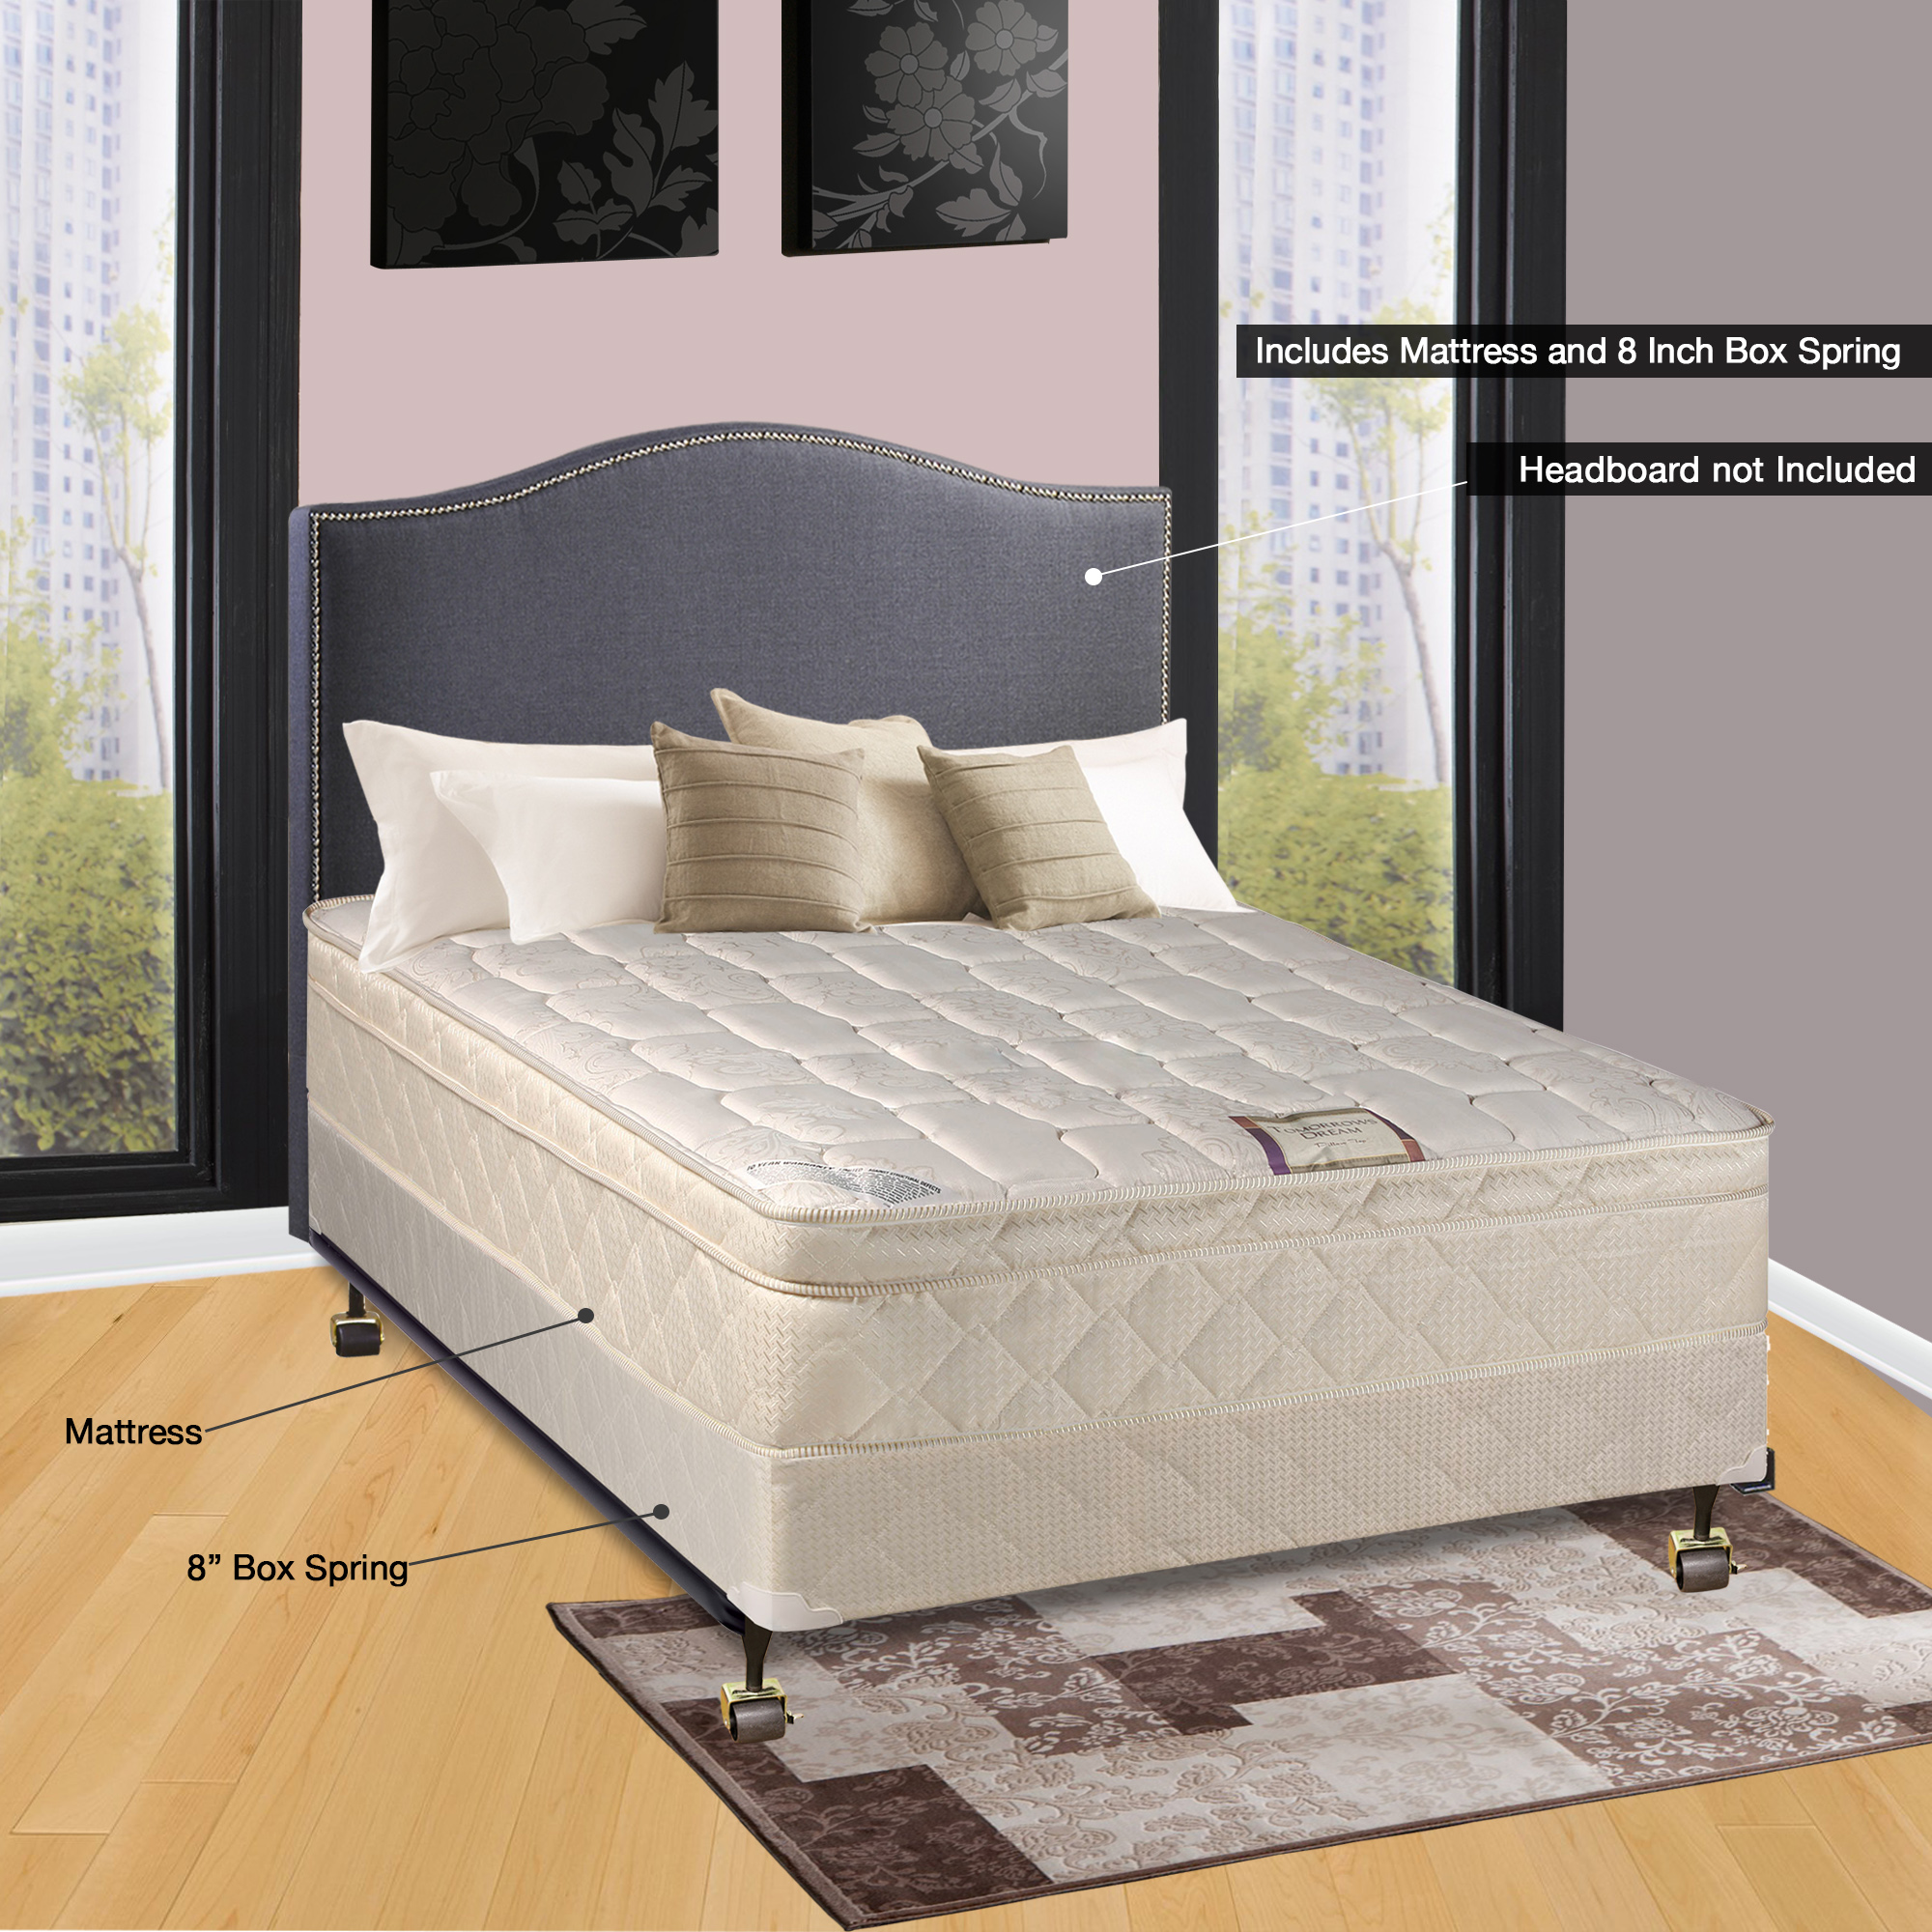 "Spinal Solution 9"" Pillowtop Fully Assembled Orthopedic Mattress and 5-inch Box Spring, Full XL"